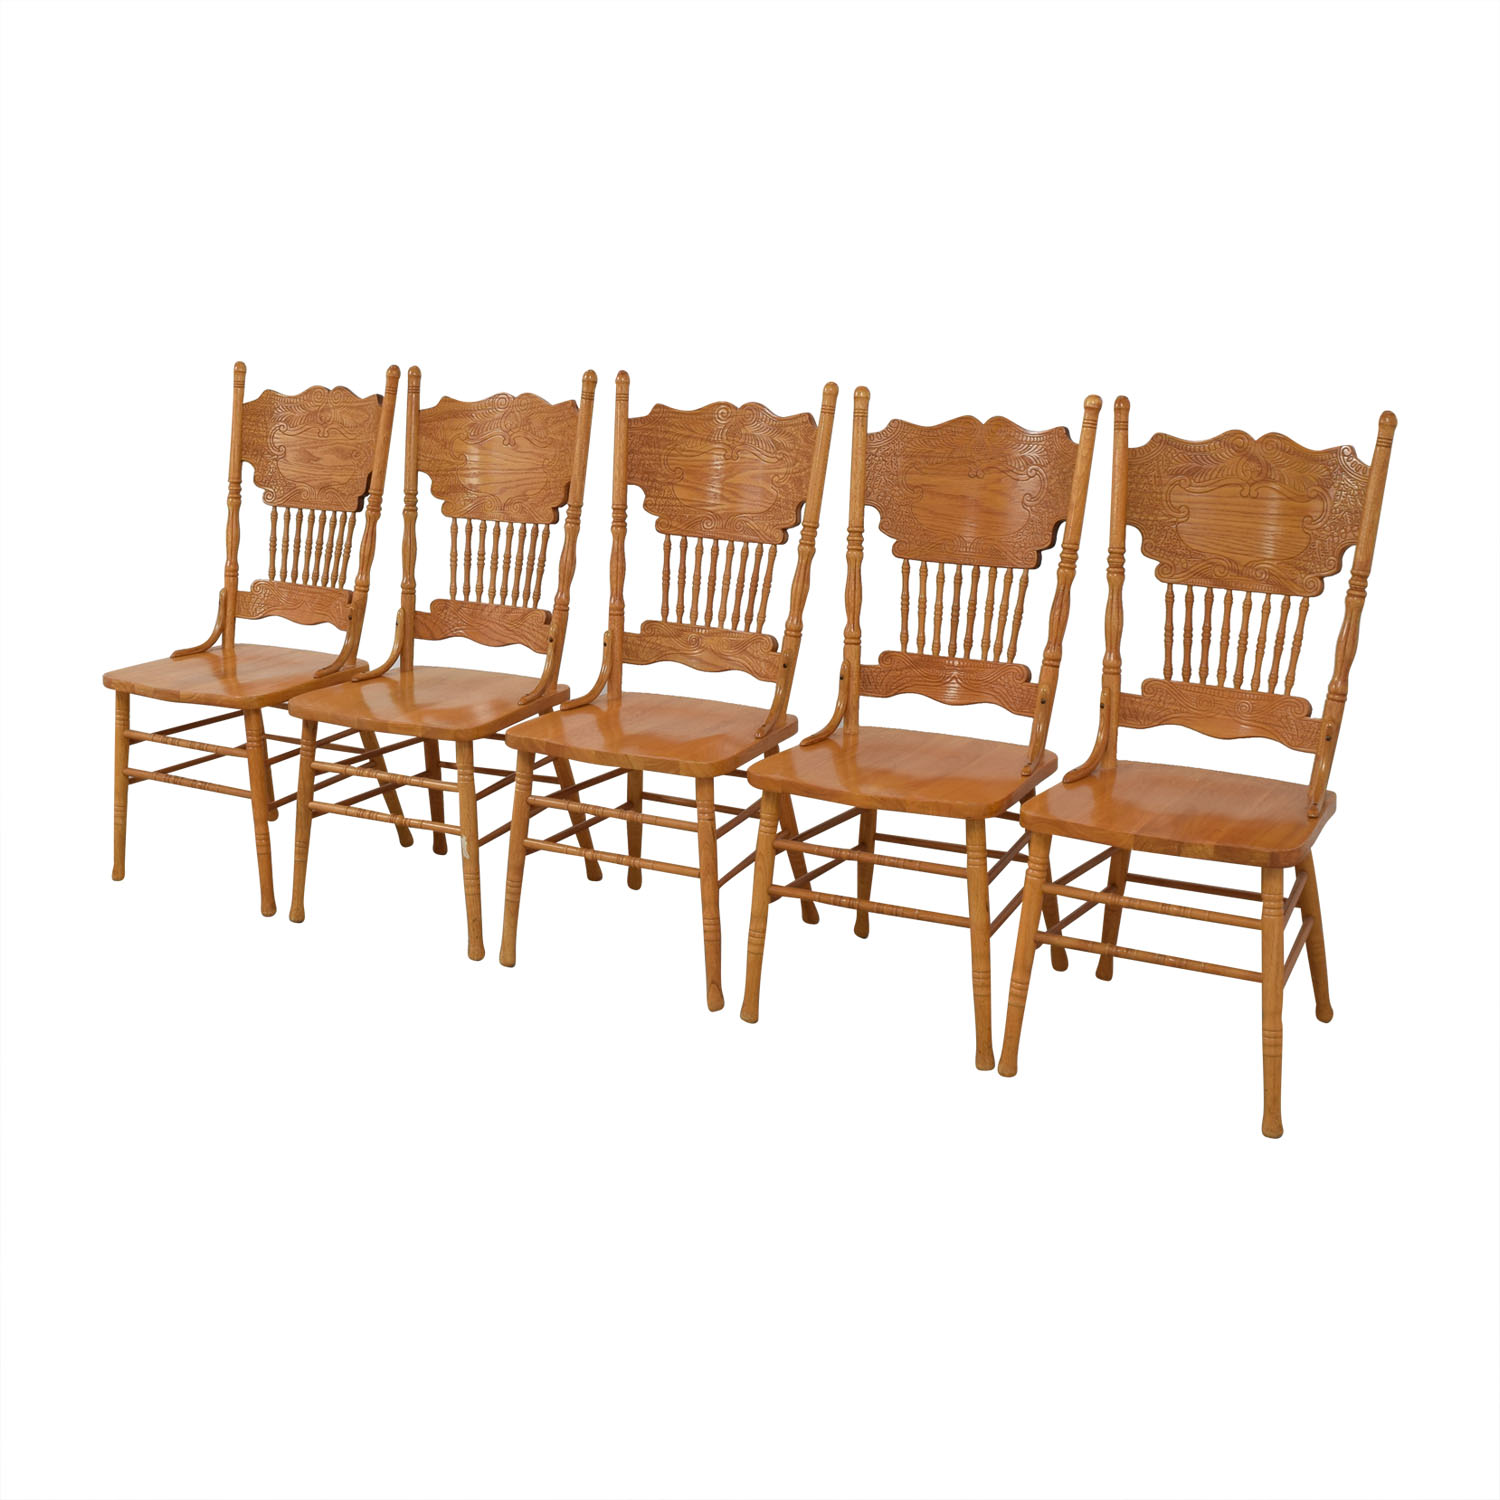 Wooden Dining Chairs on sale